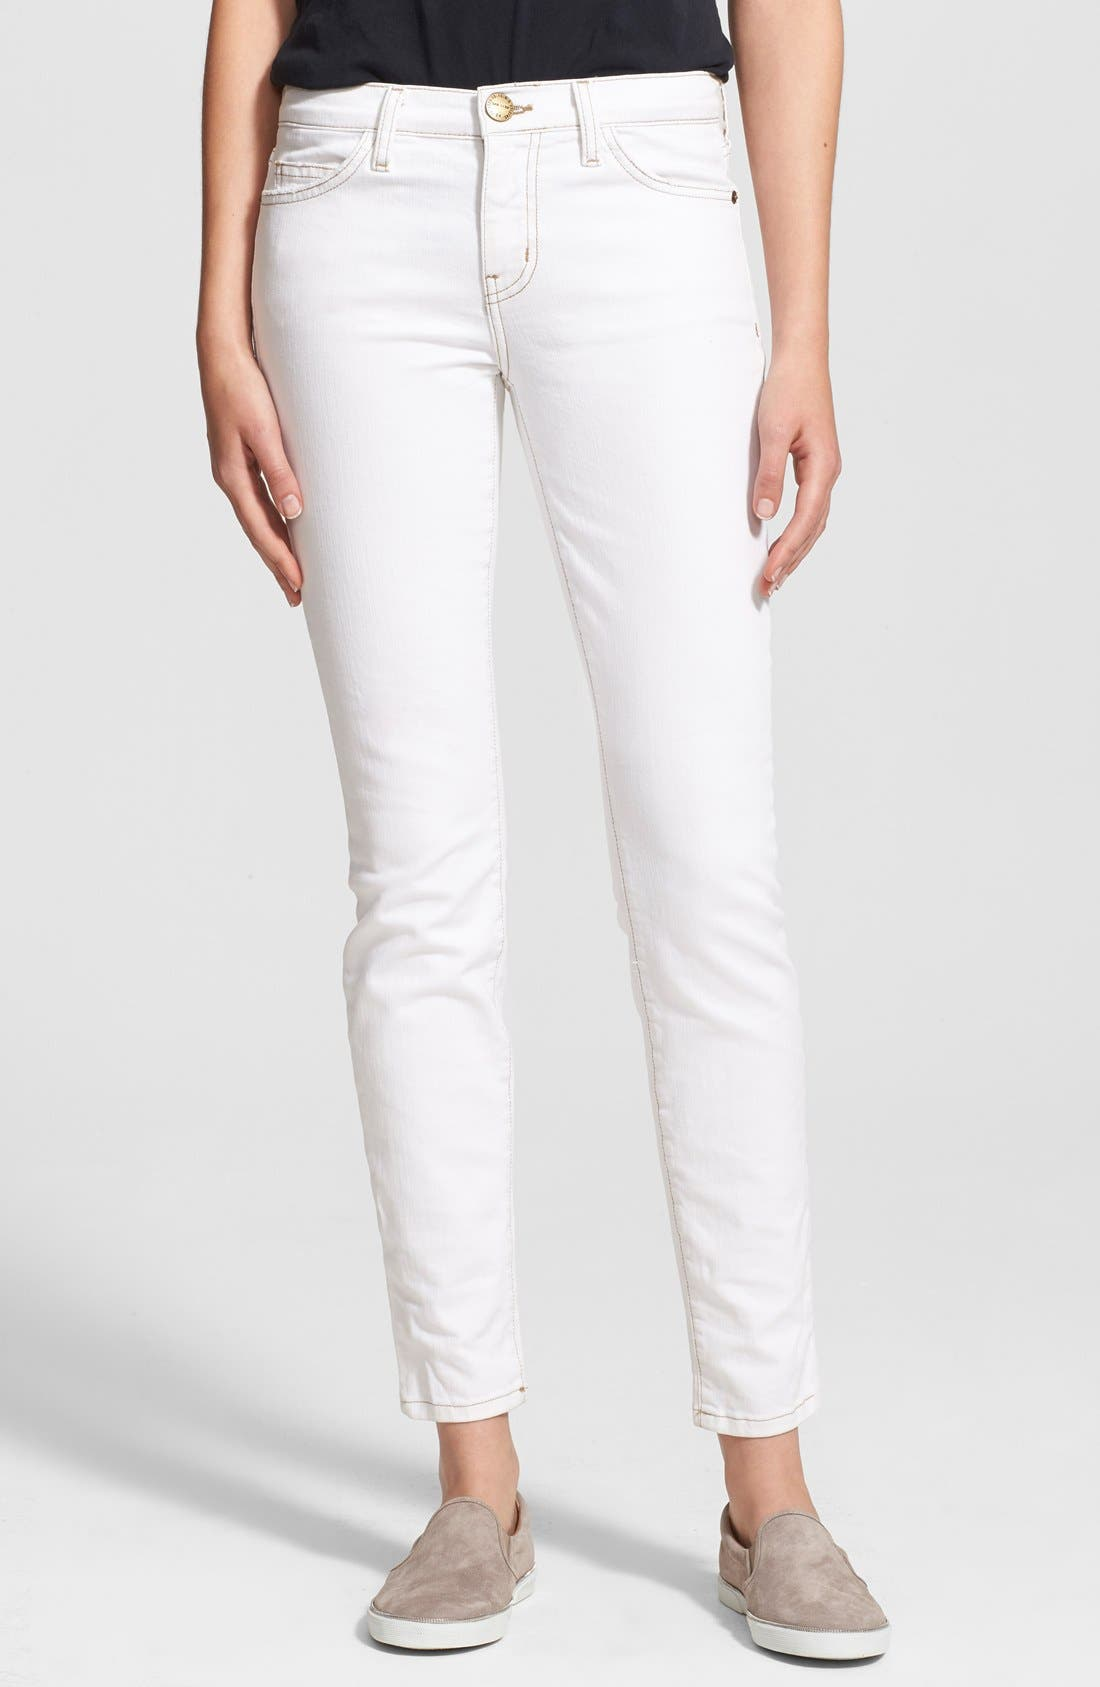 CURRENT/ELLIOTT 'The Ankle Skinny' Print Stretch Jeans, Main, color, 116